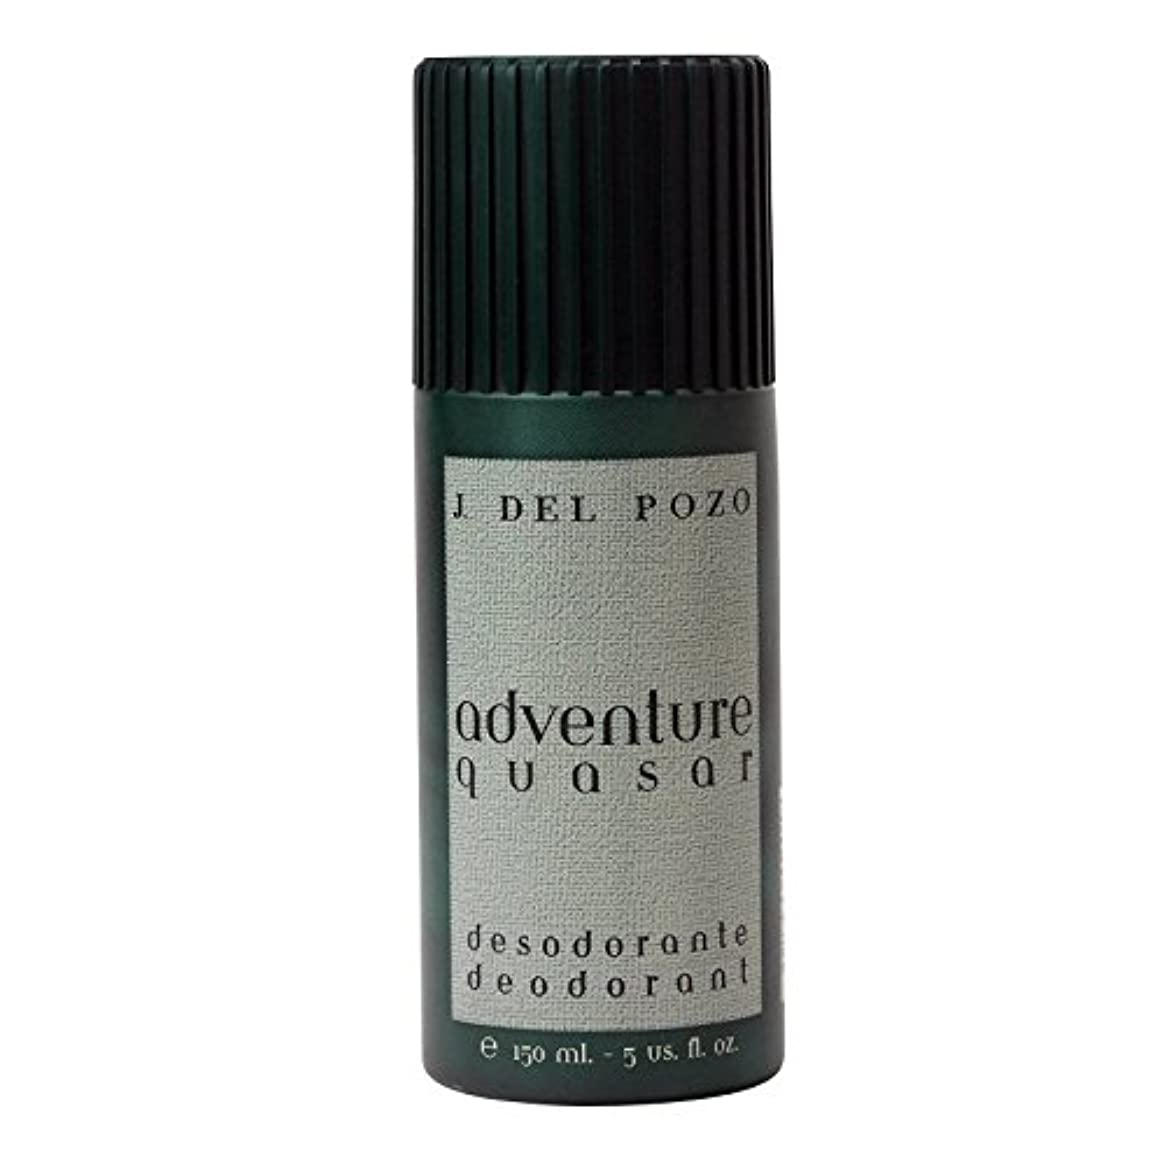 桁シンク恐怖Adventure Quasar (アドベンチャー クエイサー) 5.0 oz (150ml) Deodorant Spray by J. Del Pozo for Men